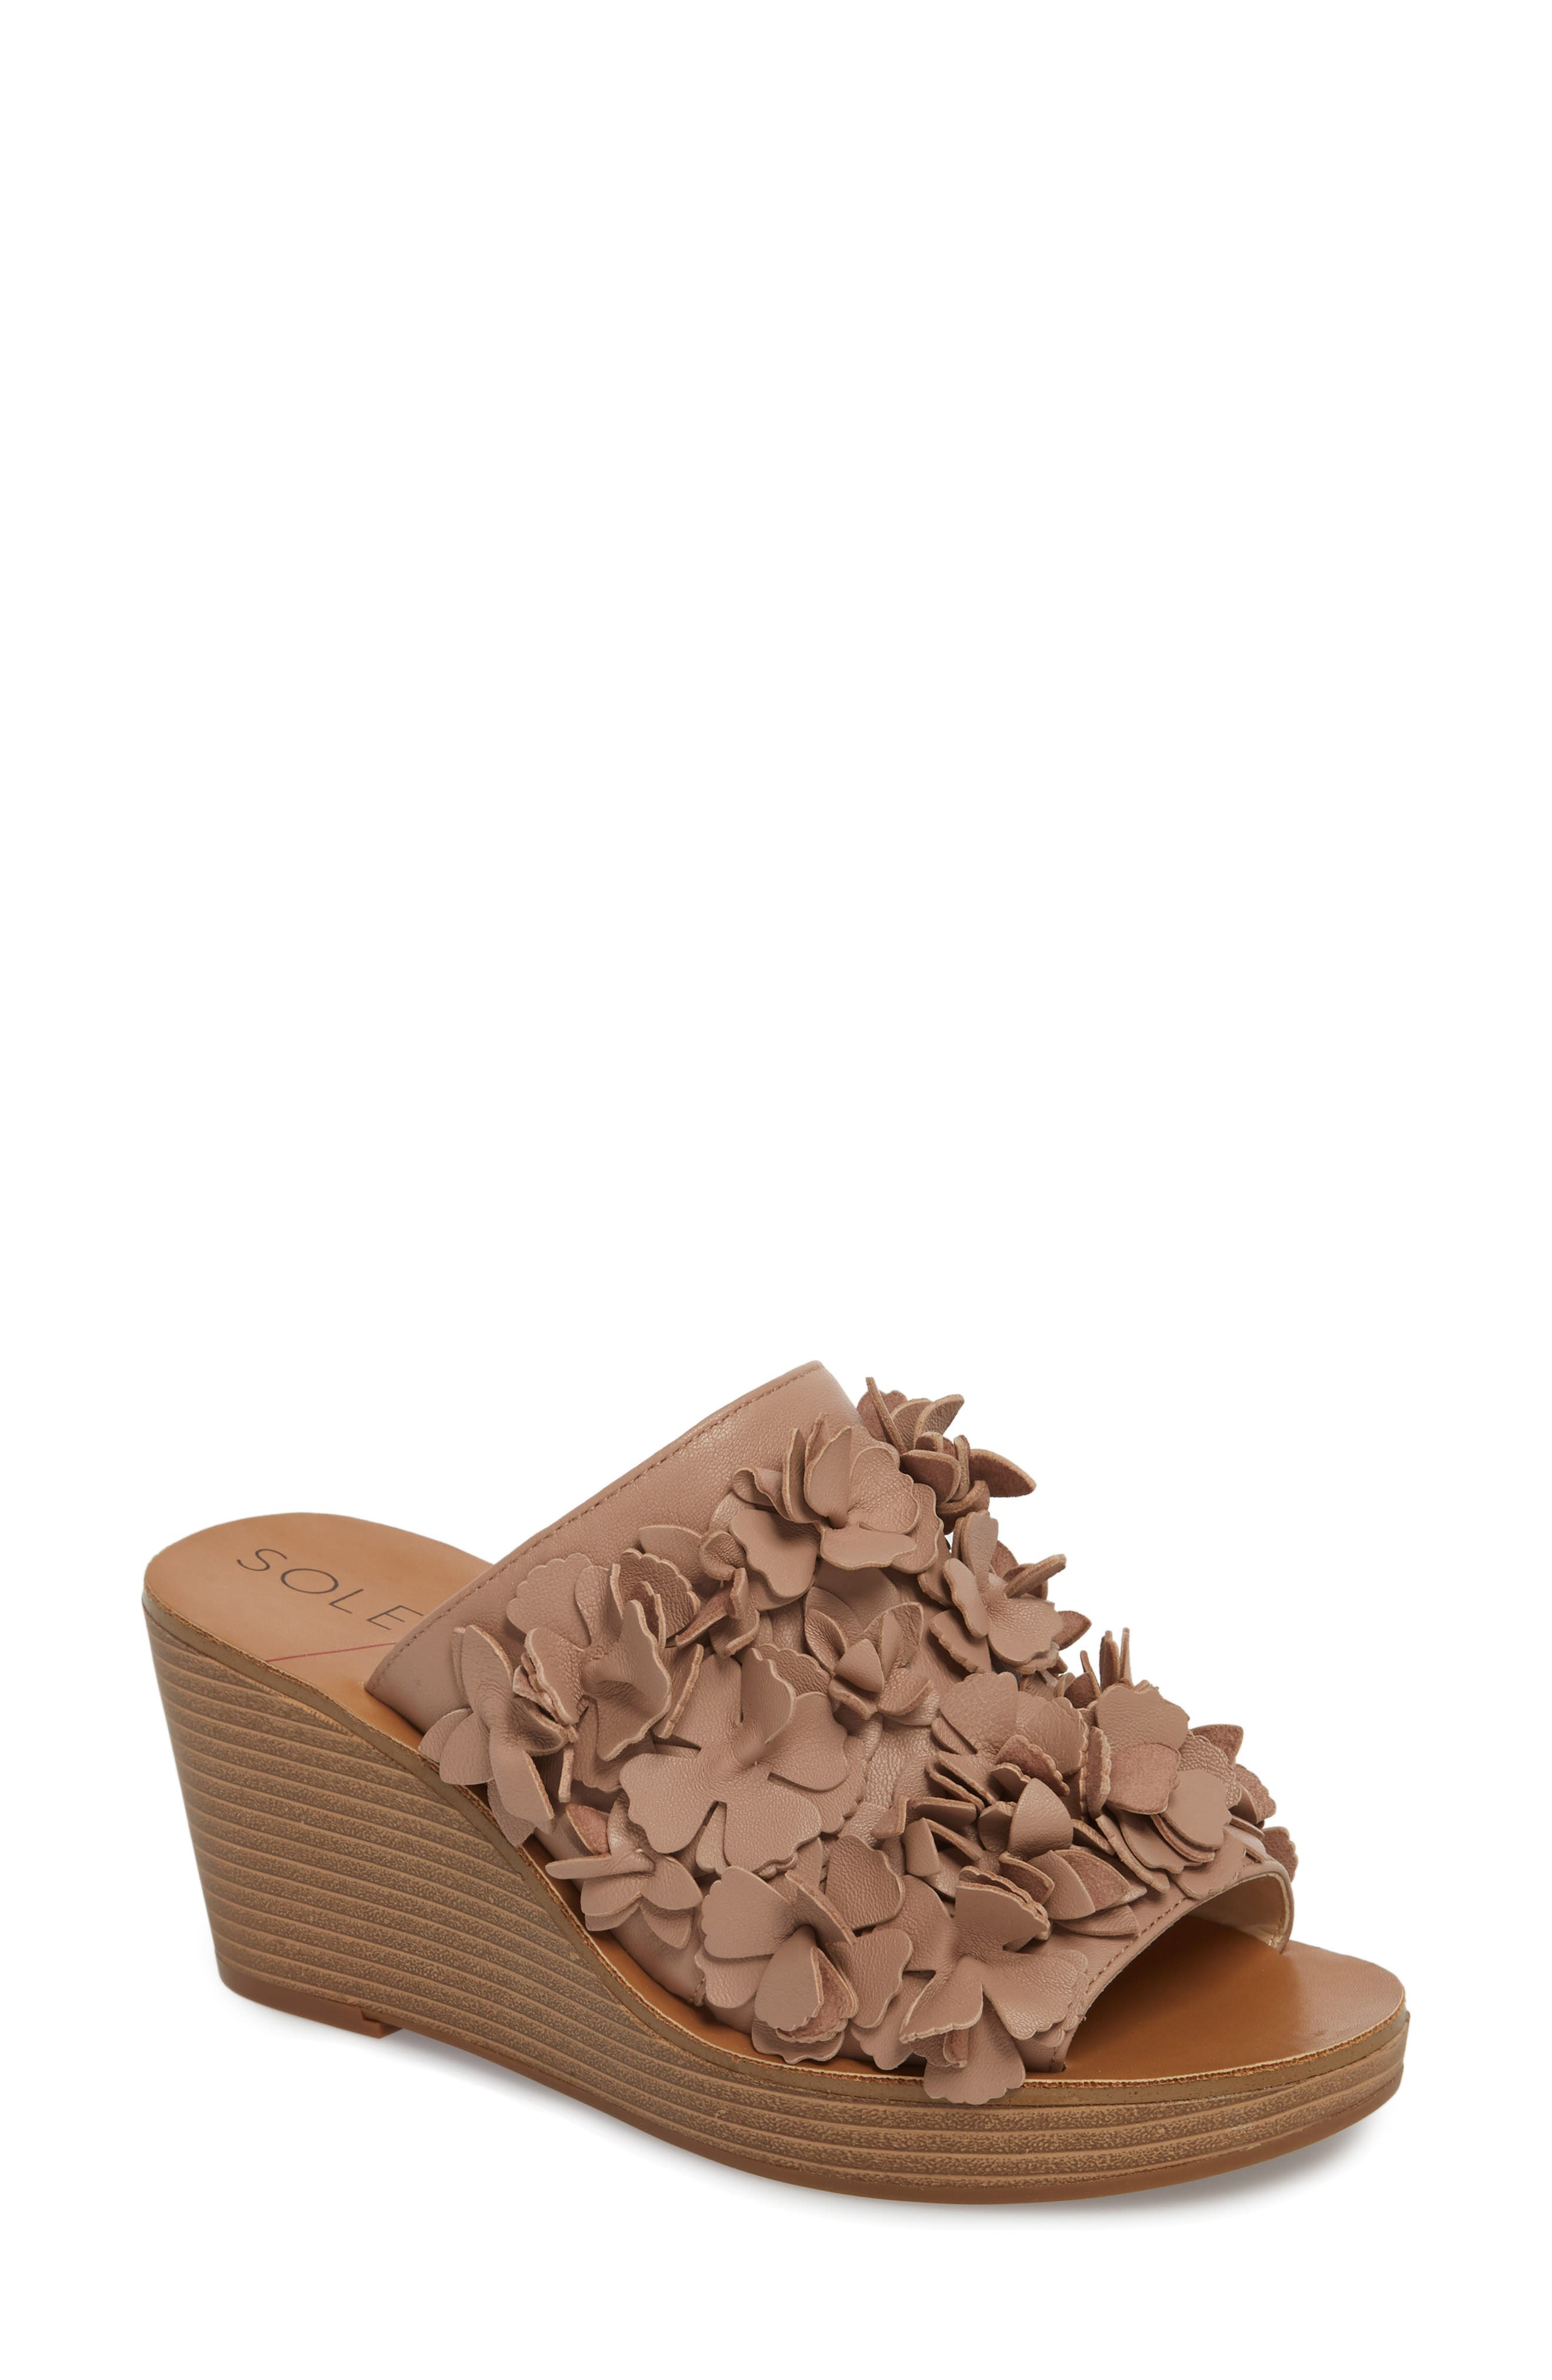 Sole Society Poppie Wedge Sandal, Pink